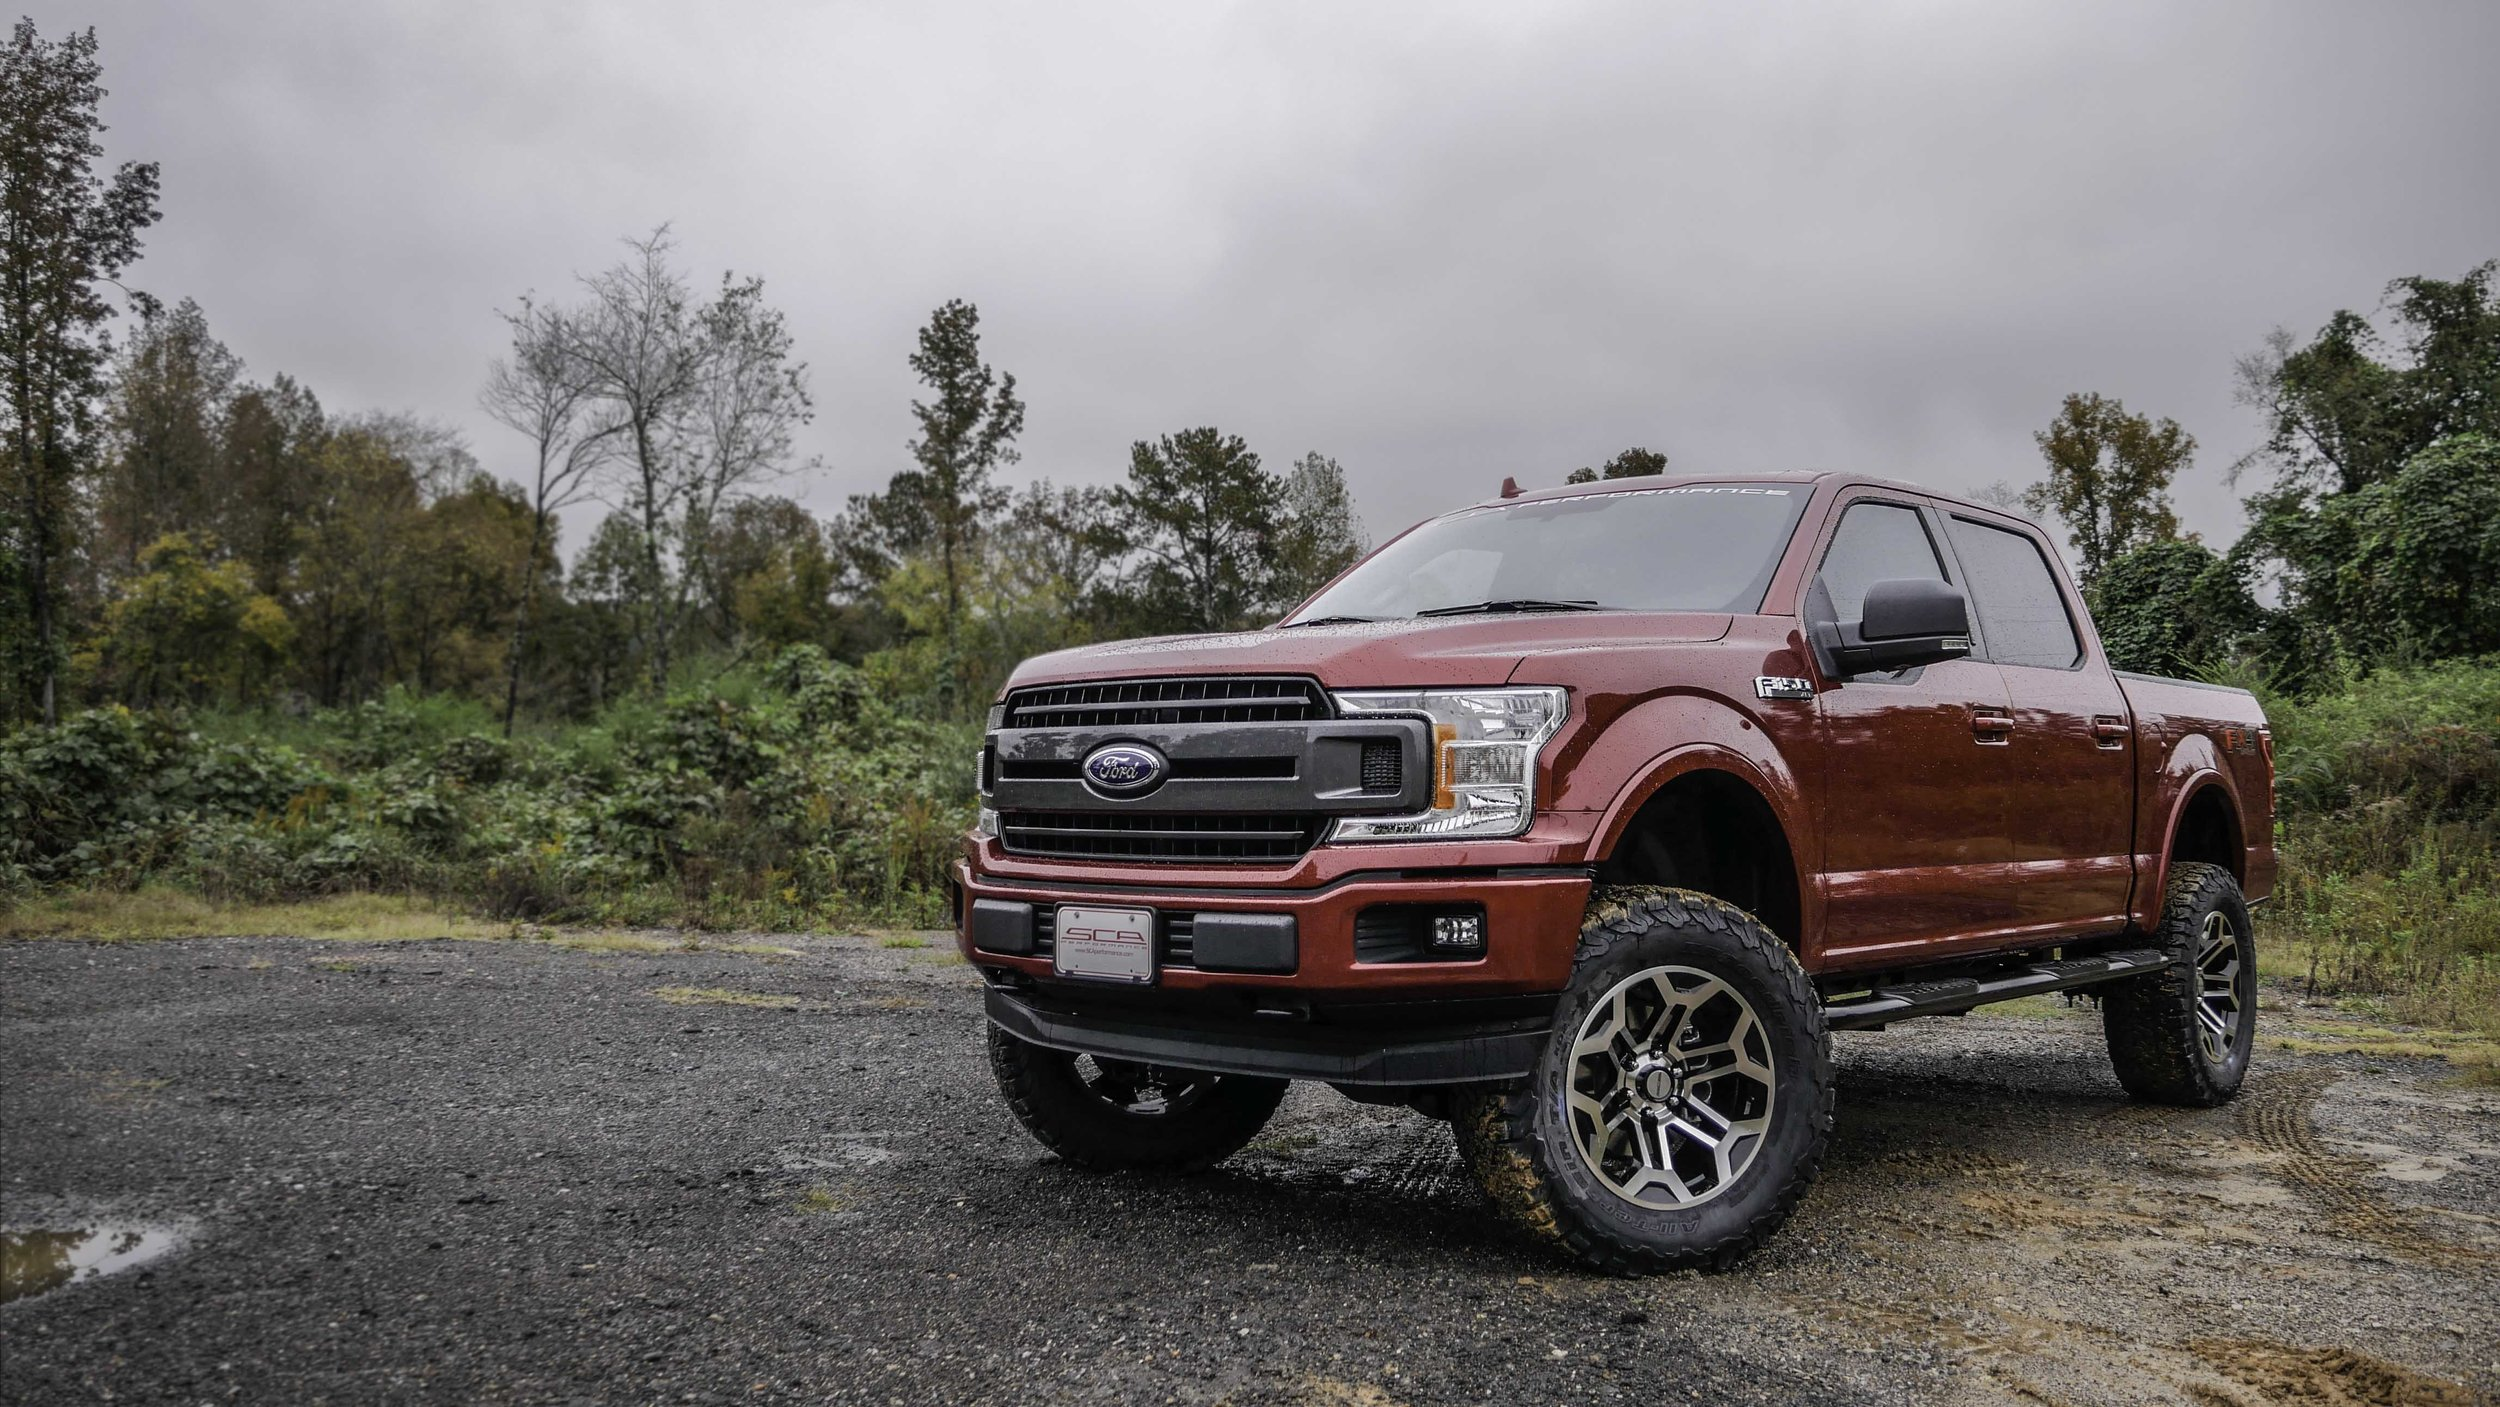 Ford Offoad Ruby.jpg